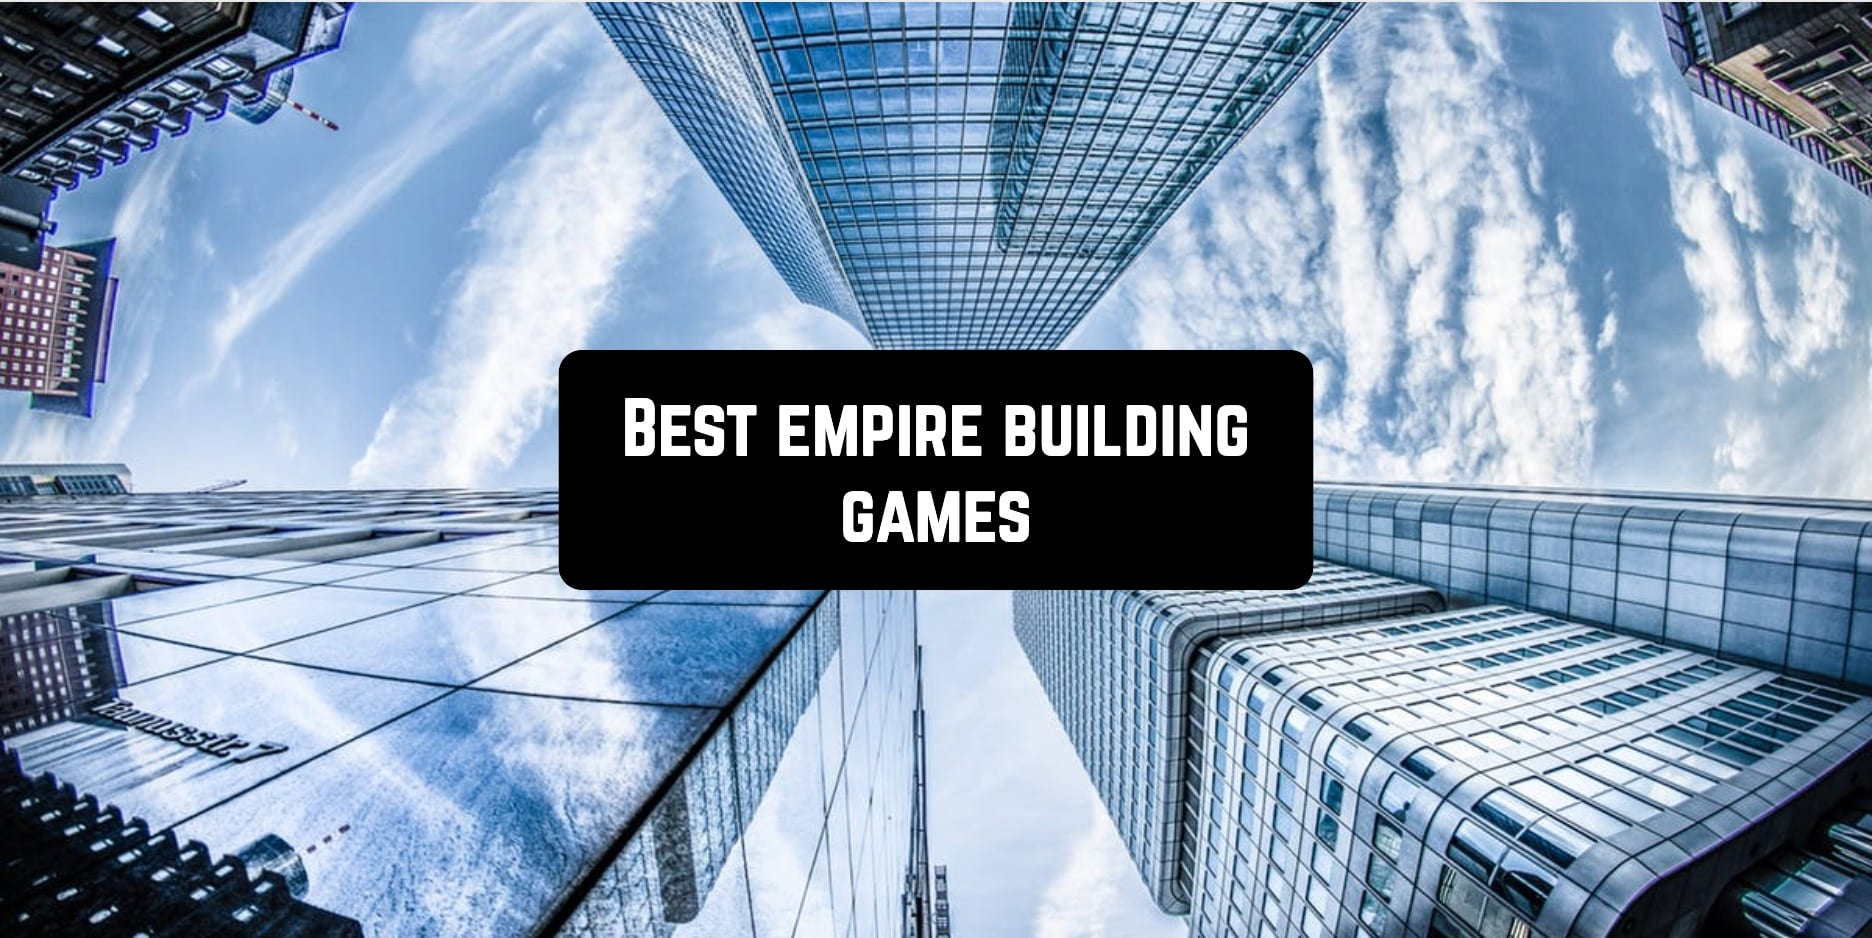 Best empire building games